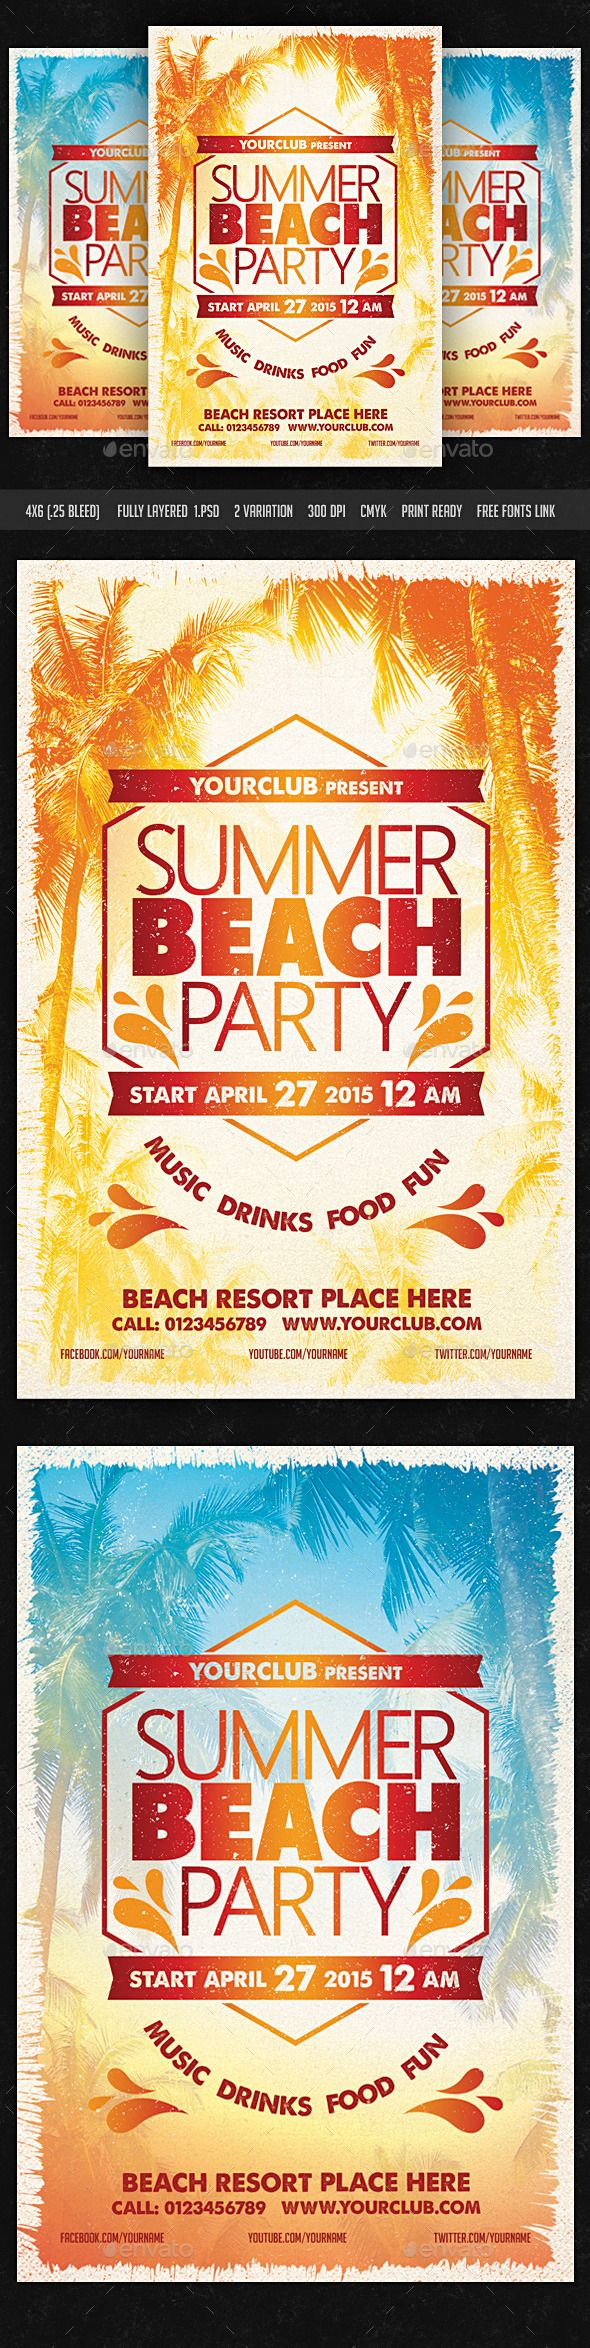 Poster design free download - Summer Beach Party Flyer